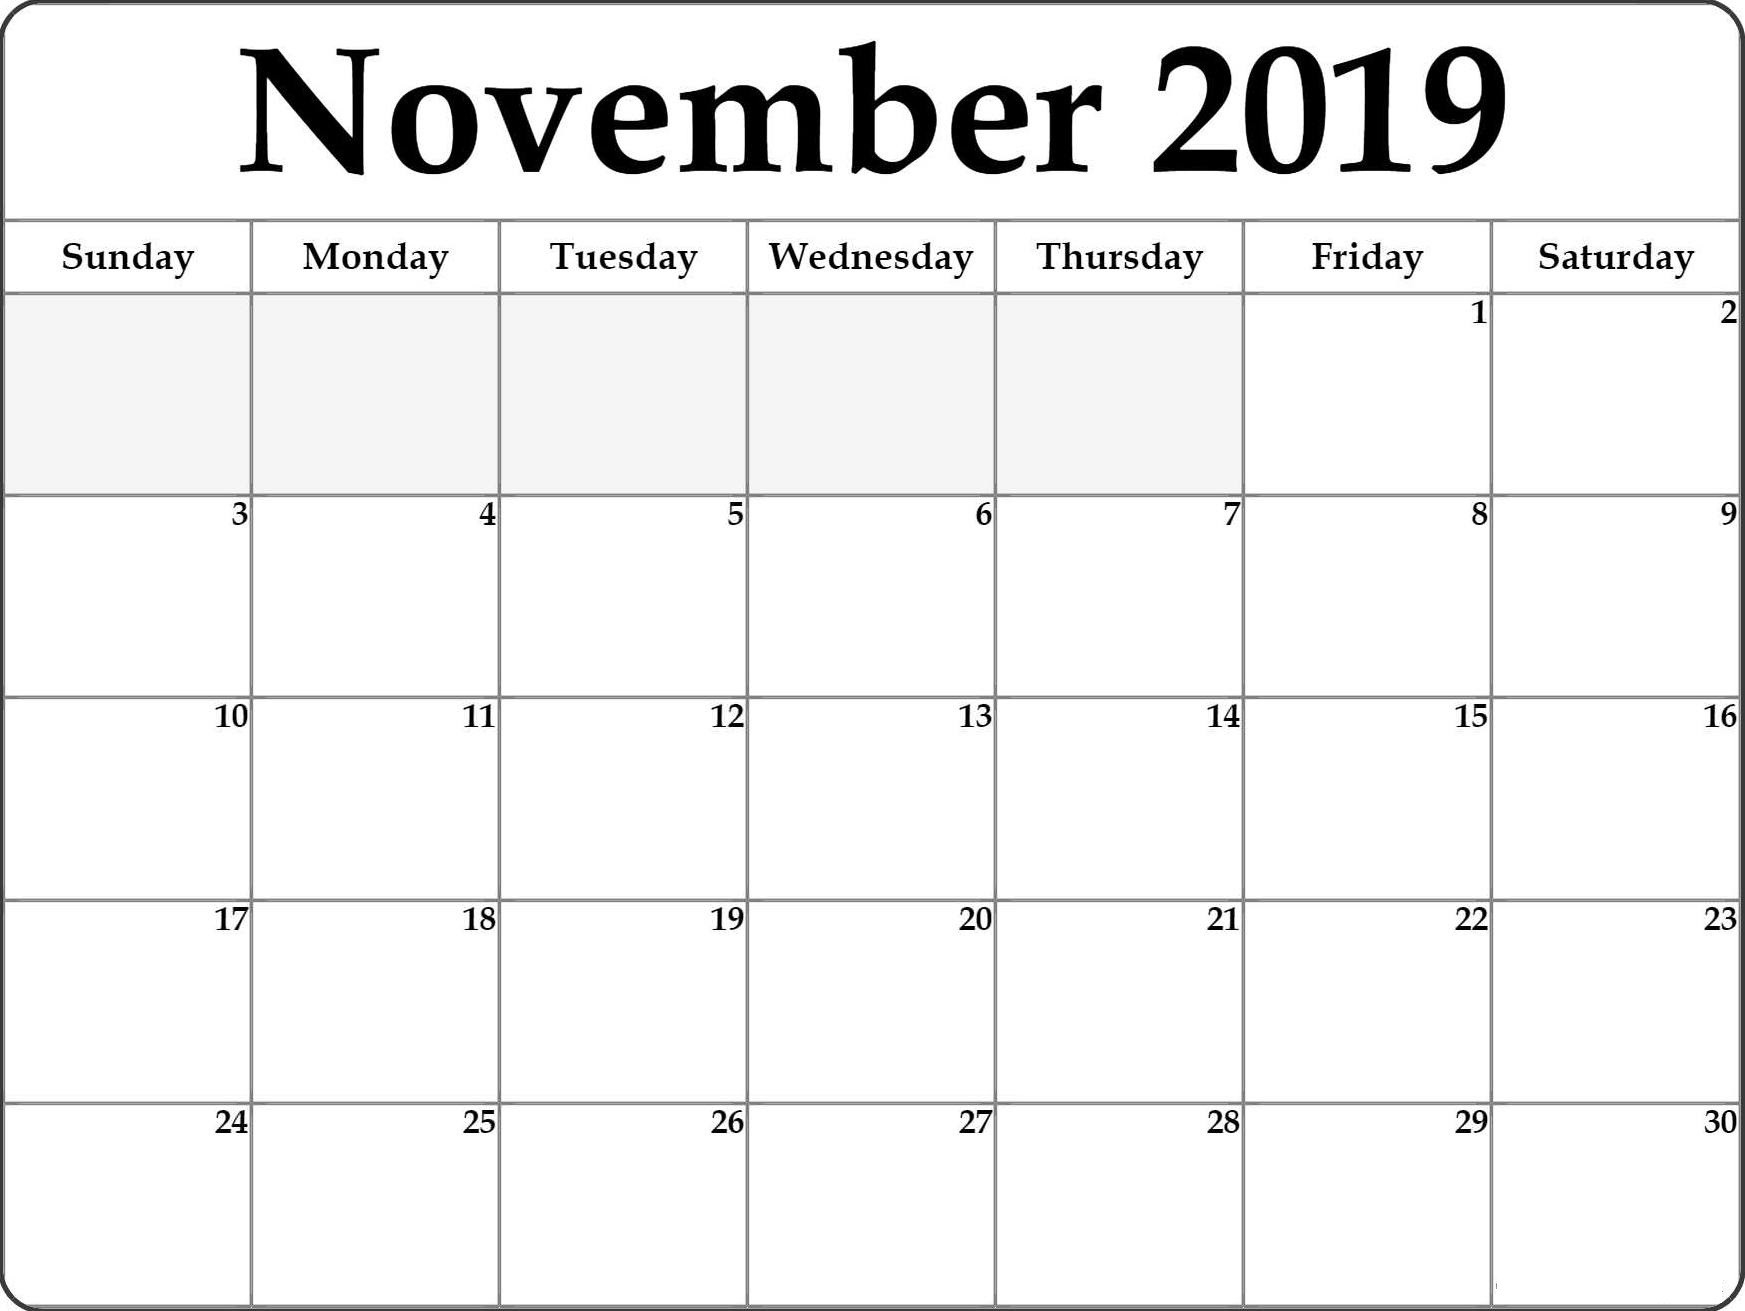 Free November Calendar 2019 Print Out - Set Your Plan  Full Page Calendar Print Out